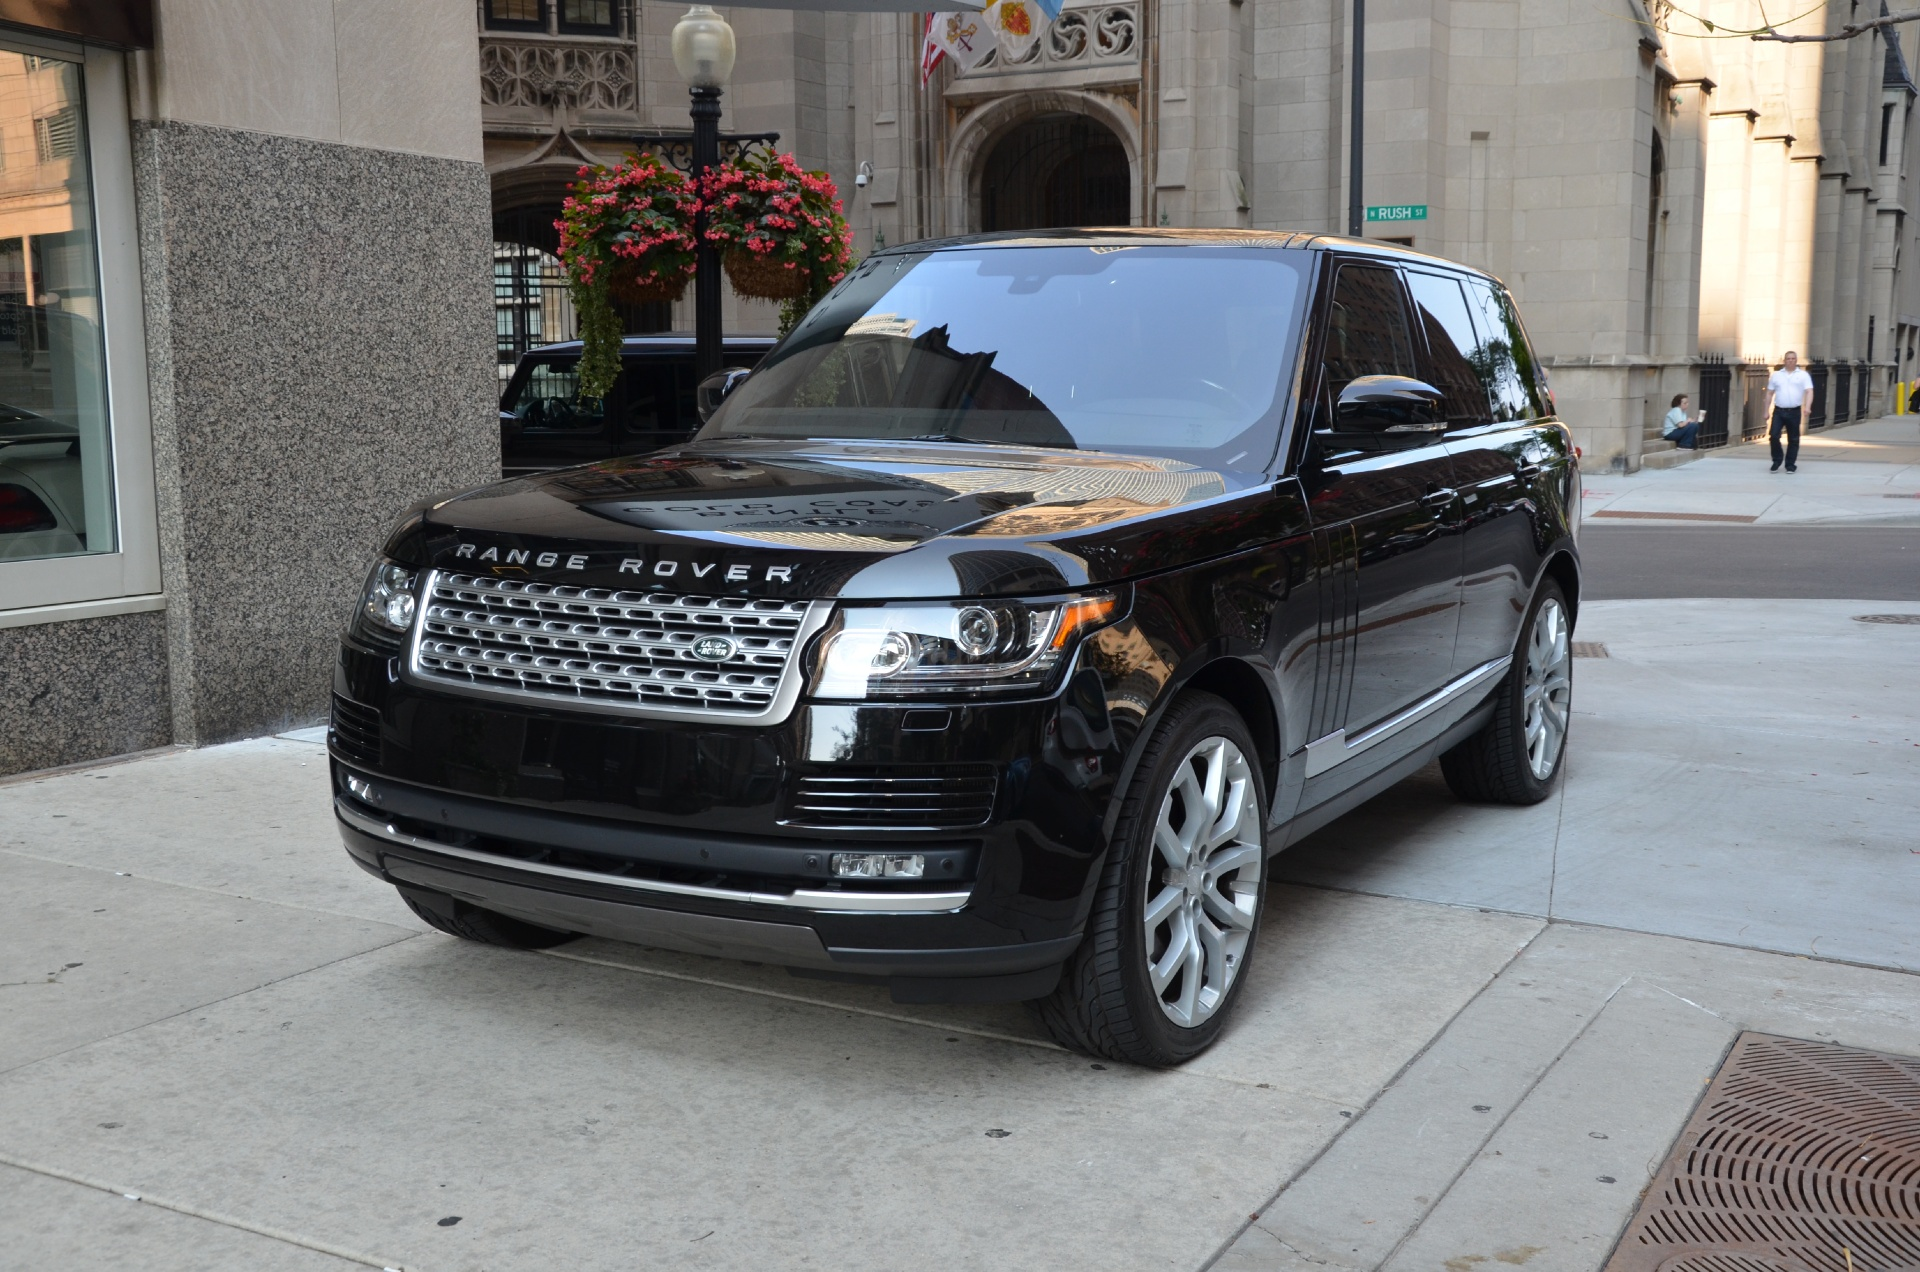 2015 land rover range rover supercharged stock r193aa for sale near chicago il il land. Black Bedroom Furniture Sets. Home Design Ideas